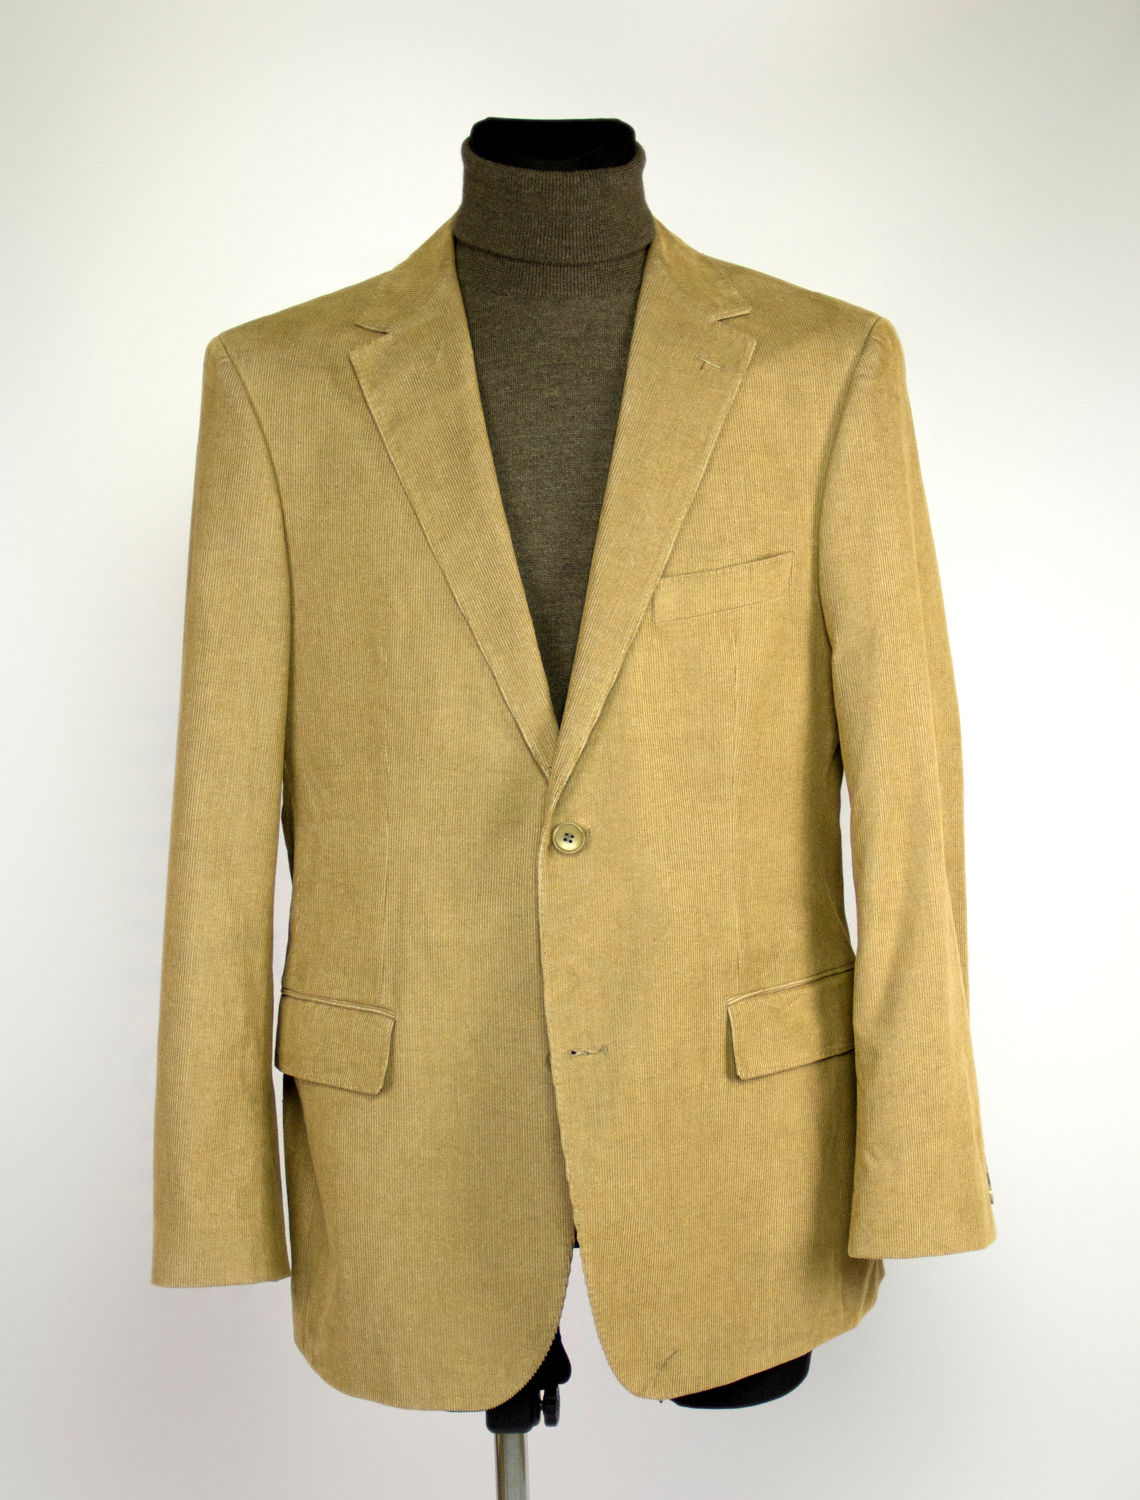 HUGO BOSS Brown CORDUROY Blazer Sport Coat, US 40/EUR 50 - secondfirst